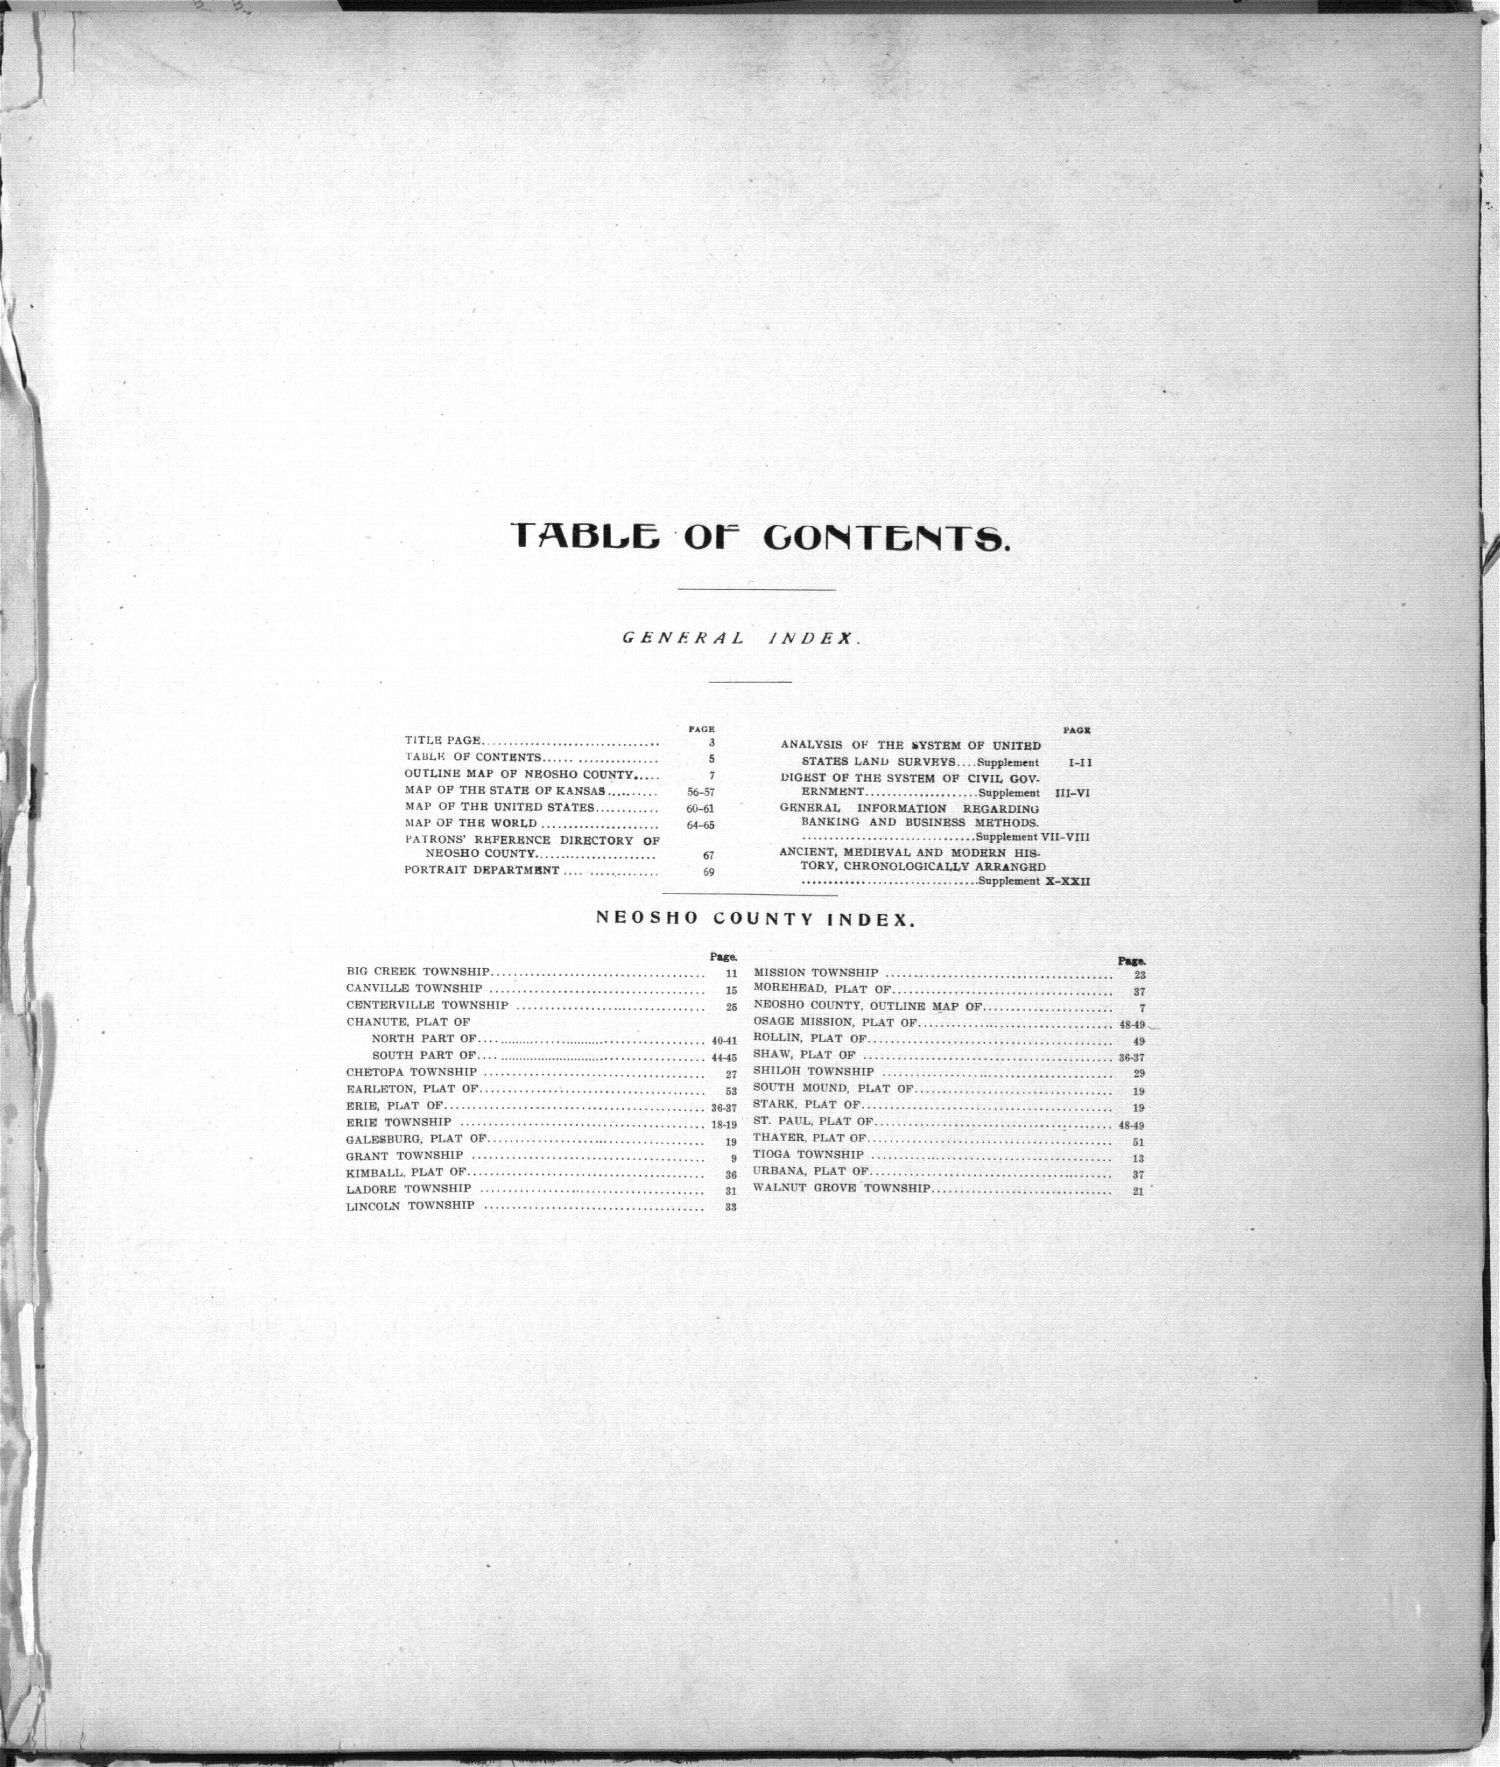 Standard atlas of Neosho County, Kansas - Table of Contents